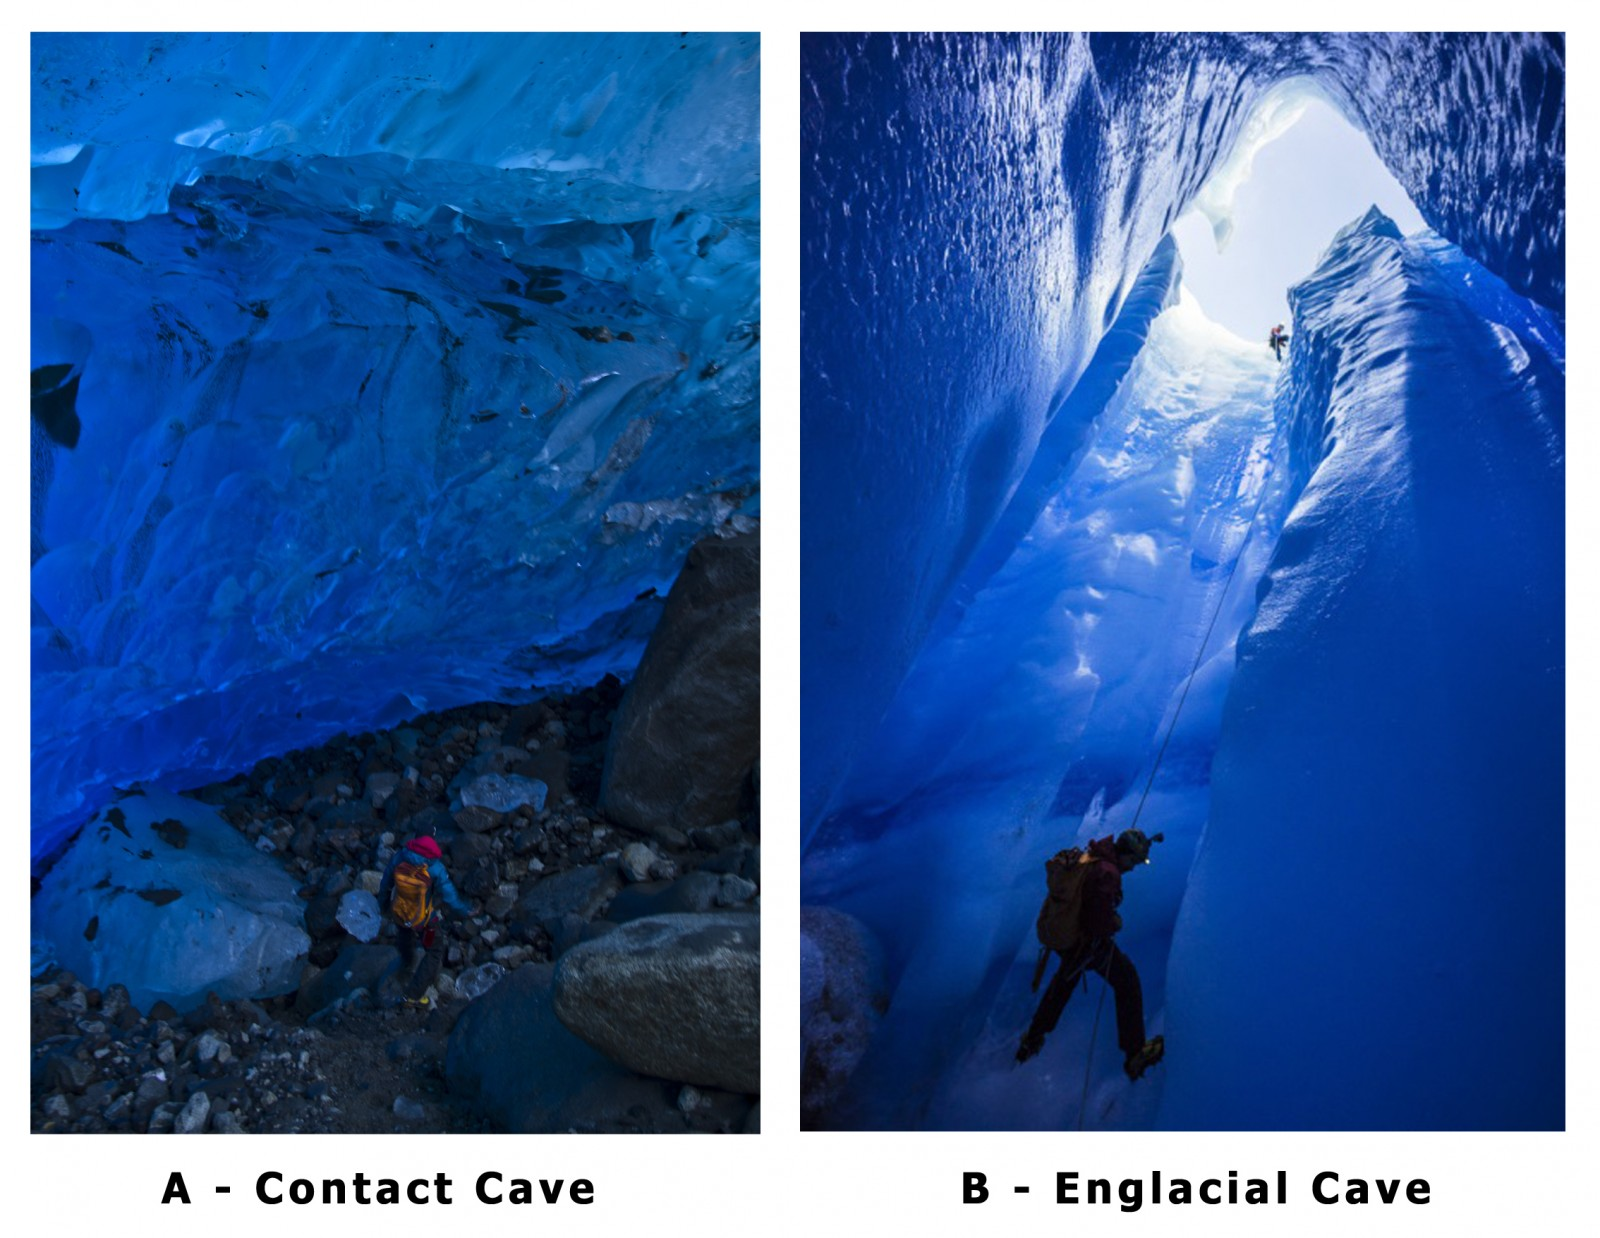 Figure 2: Two different types of caves explored on the Grey Glacier. A- Contact formed between the glacier bed and overlying ice [Credit: Tommaso Santagata]. B- Entrance to an englacial cave [Credit: Alessio Romeo/La Venta].